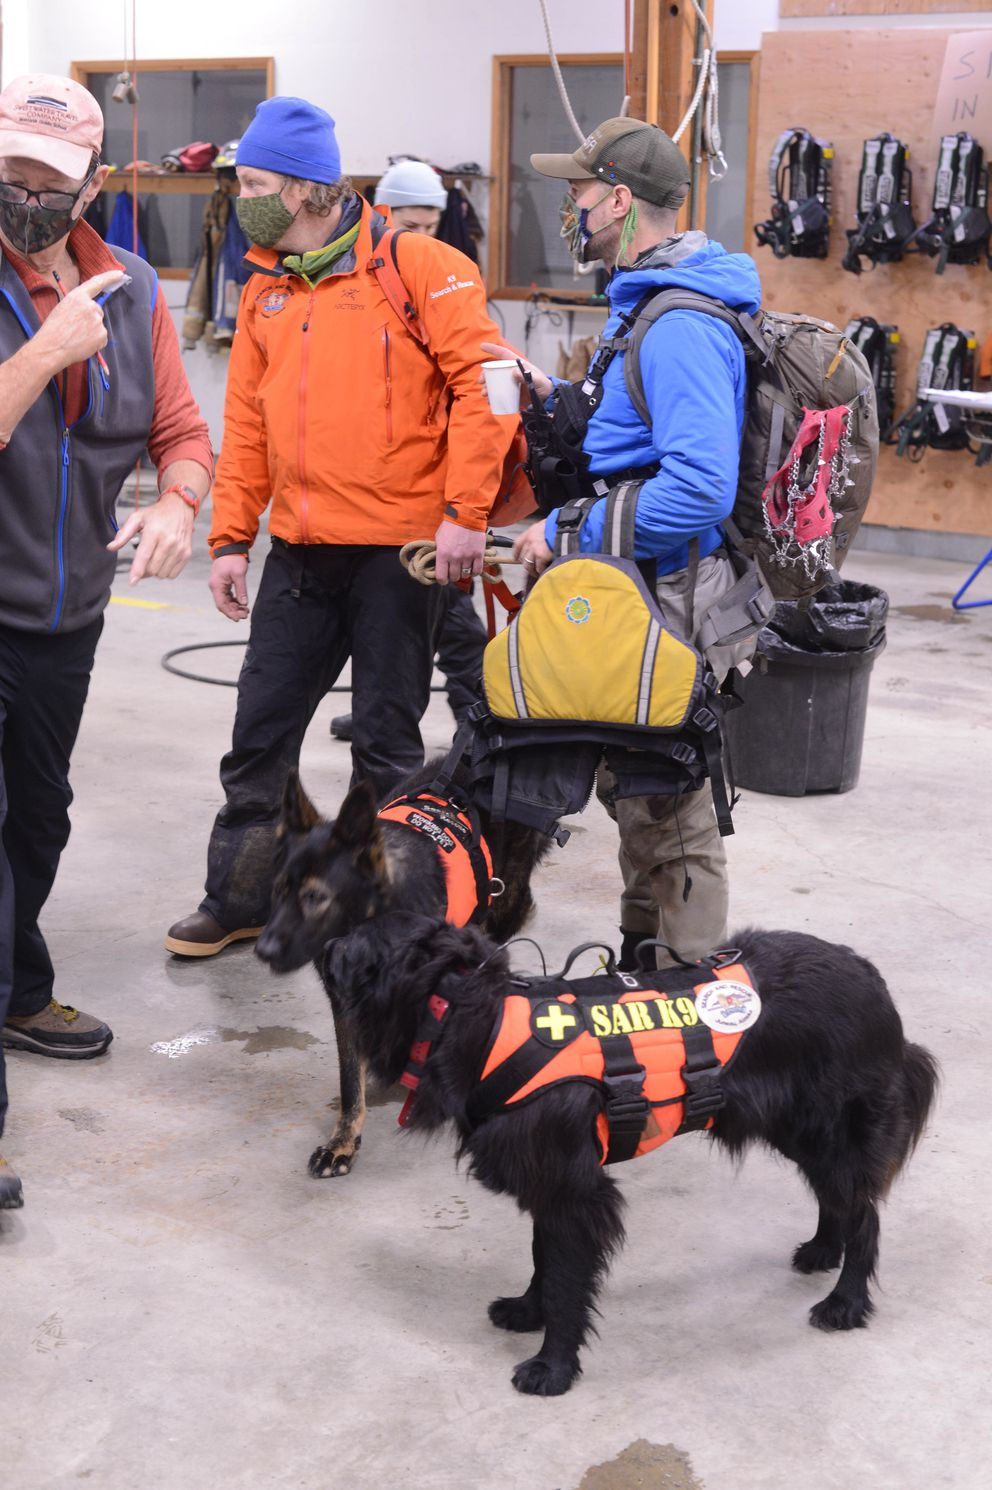 Canine search and rescue teams from Haines and Juneau prepare on Saturday morning, Dec. 5, 2020, for another day of searching for David Simmons and Jenae Larson, the two people missing after a major landslide in Haines. The dogs are Otis (near) and Hera (far). (James Brooks / ADN)